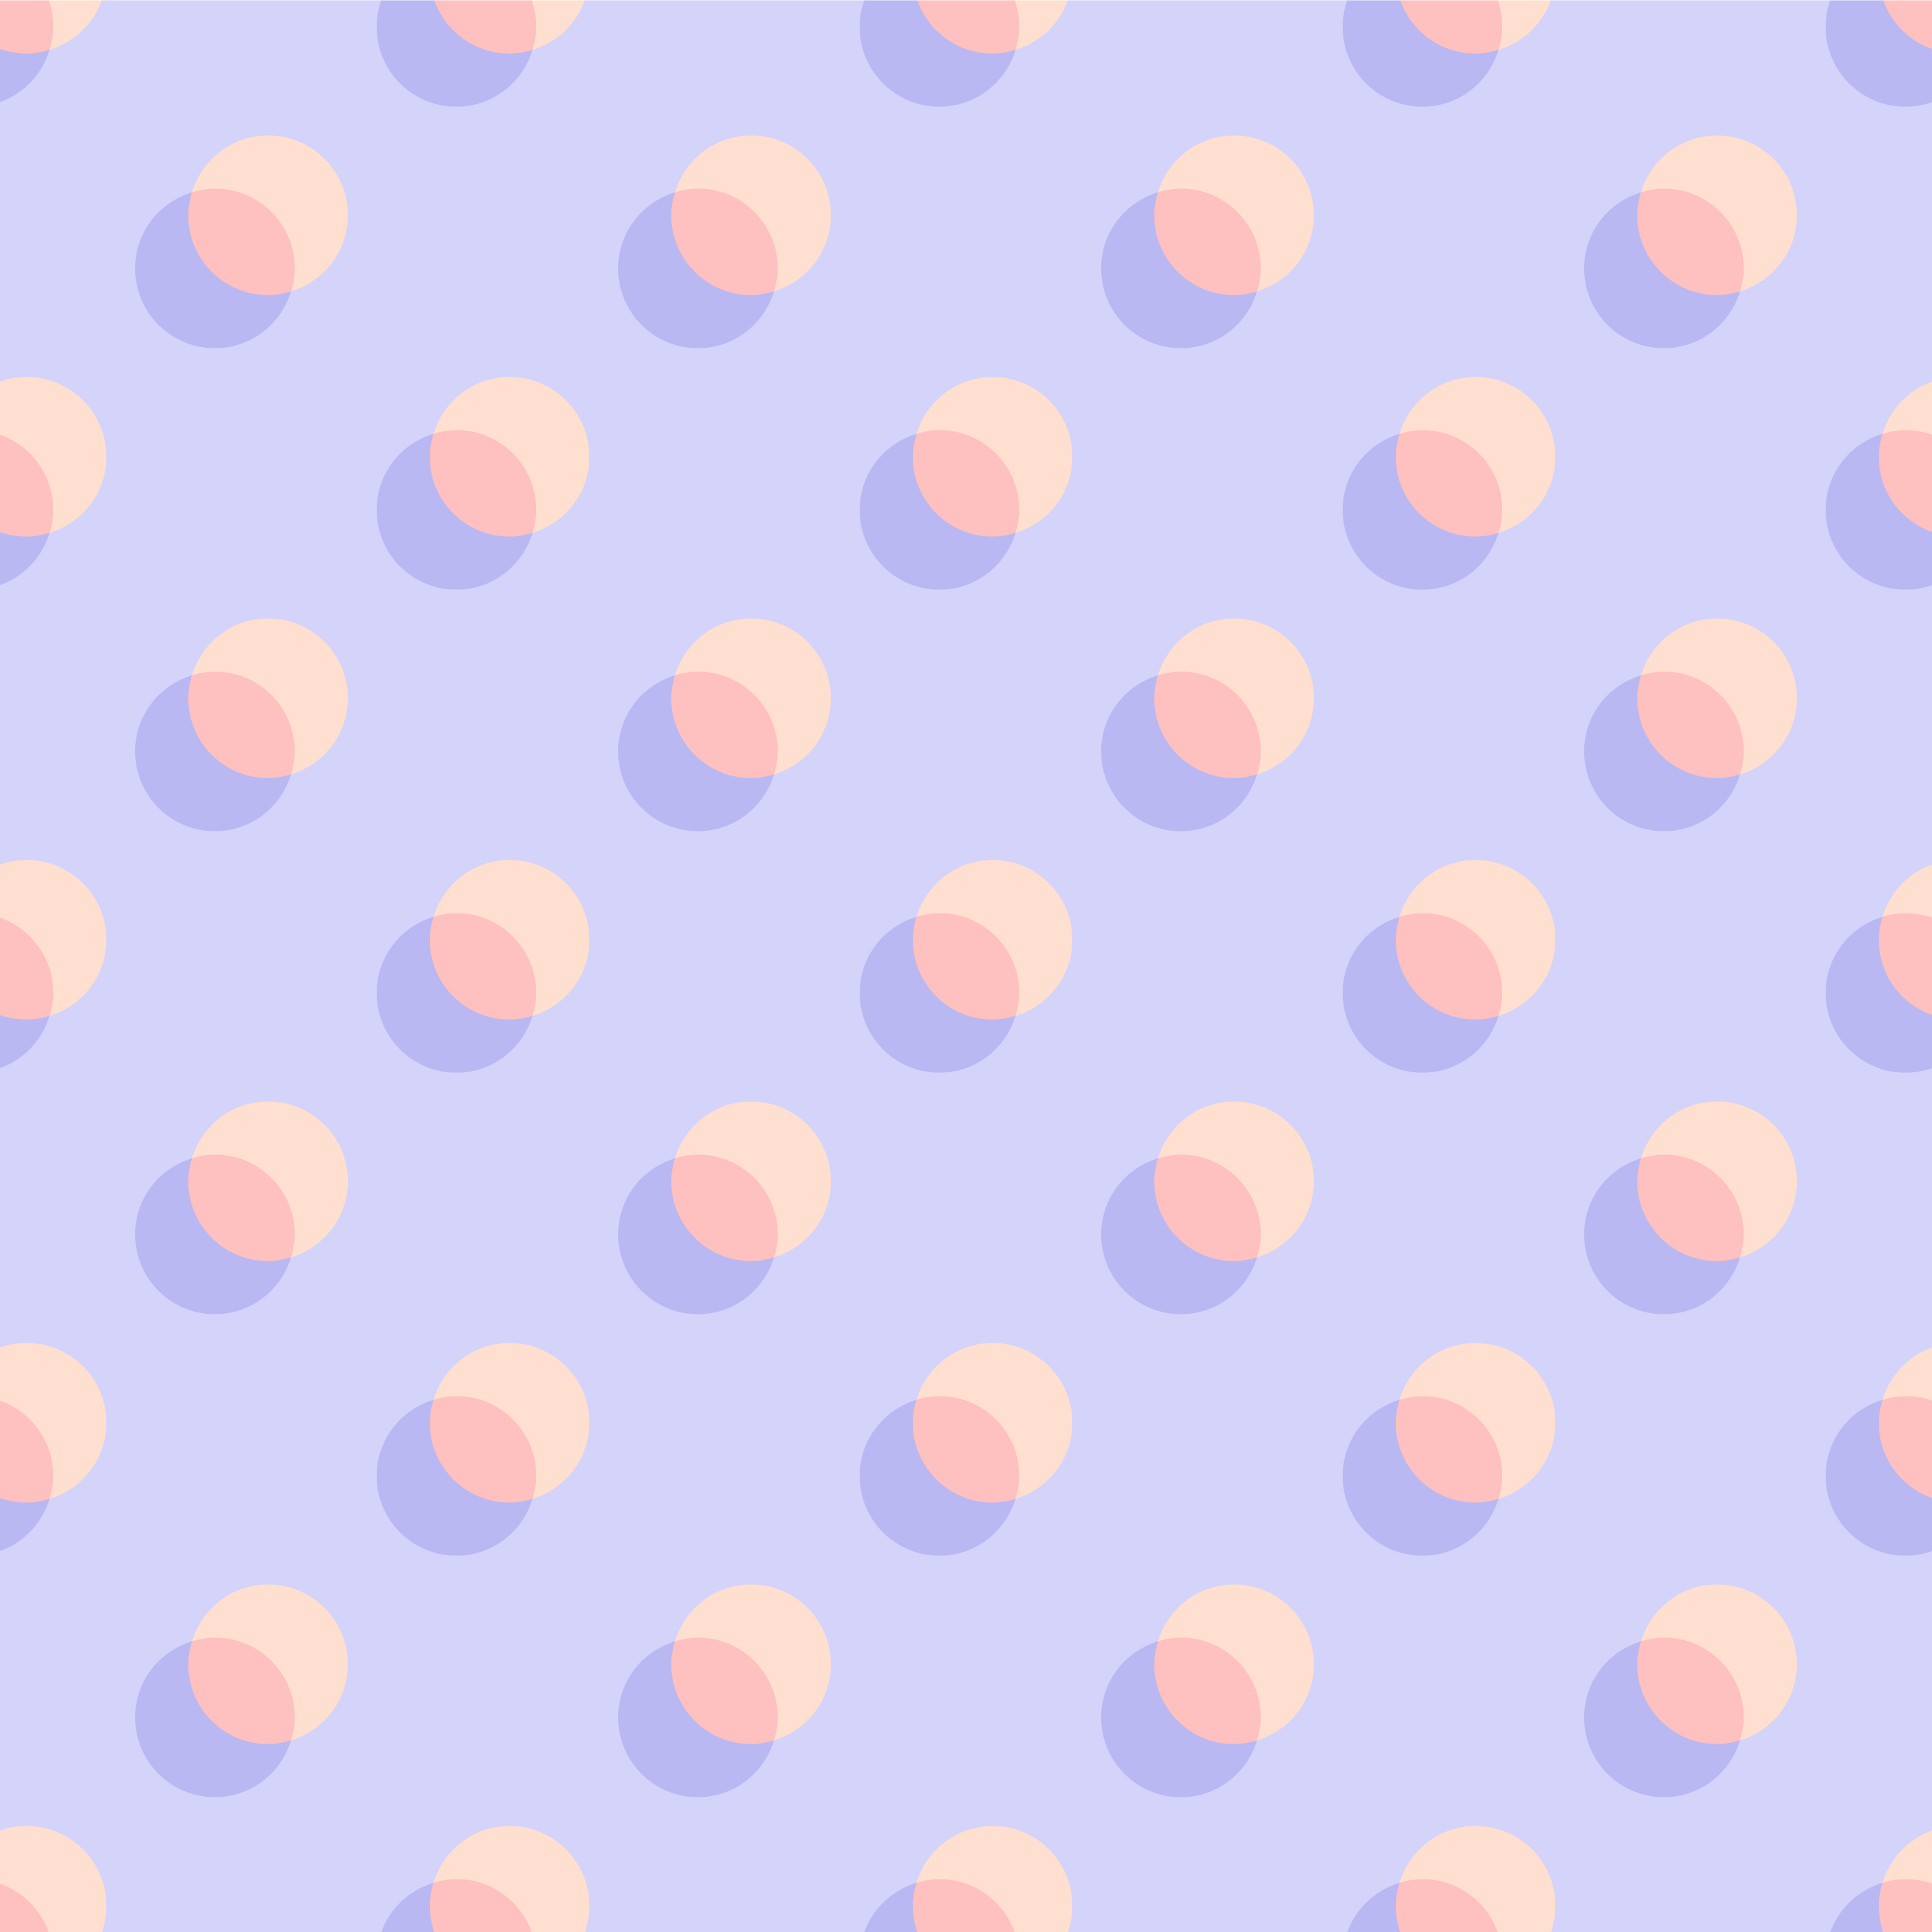 Pastel Overlapping Polka Dots Seamless Pattern vector